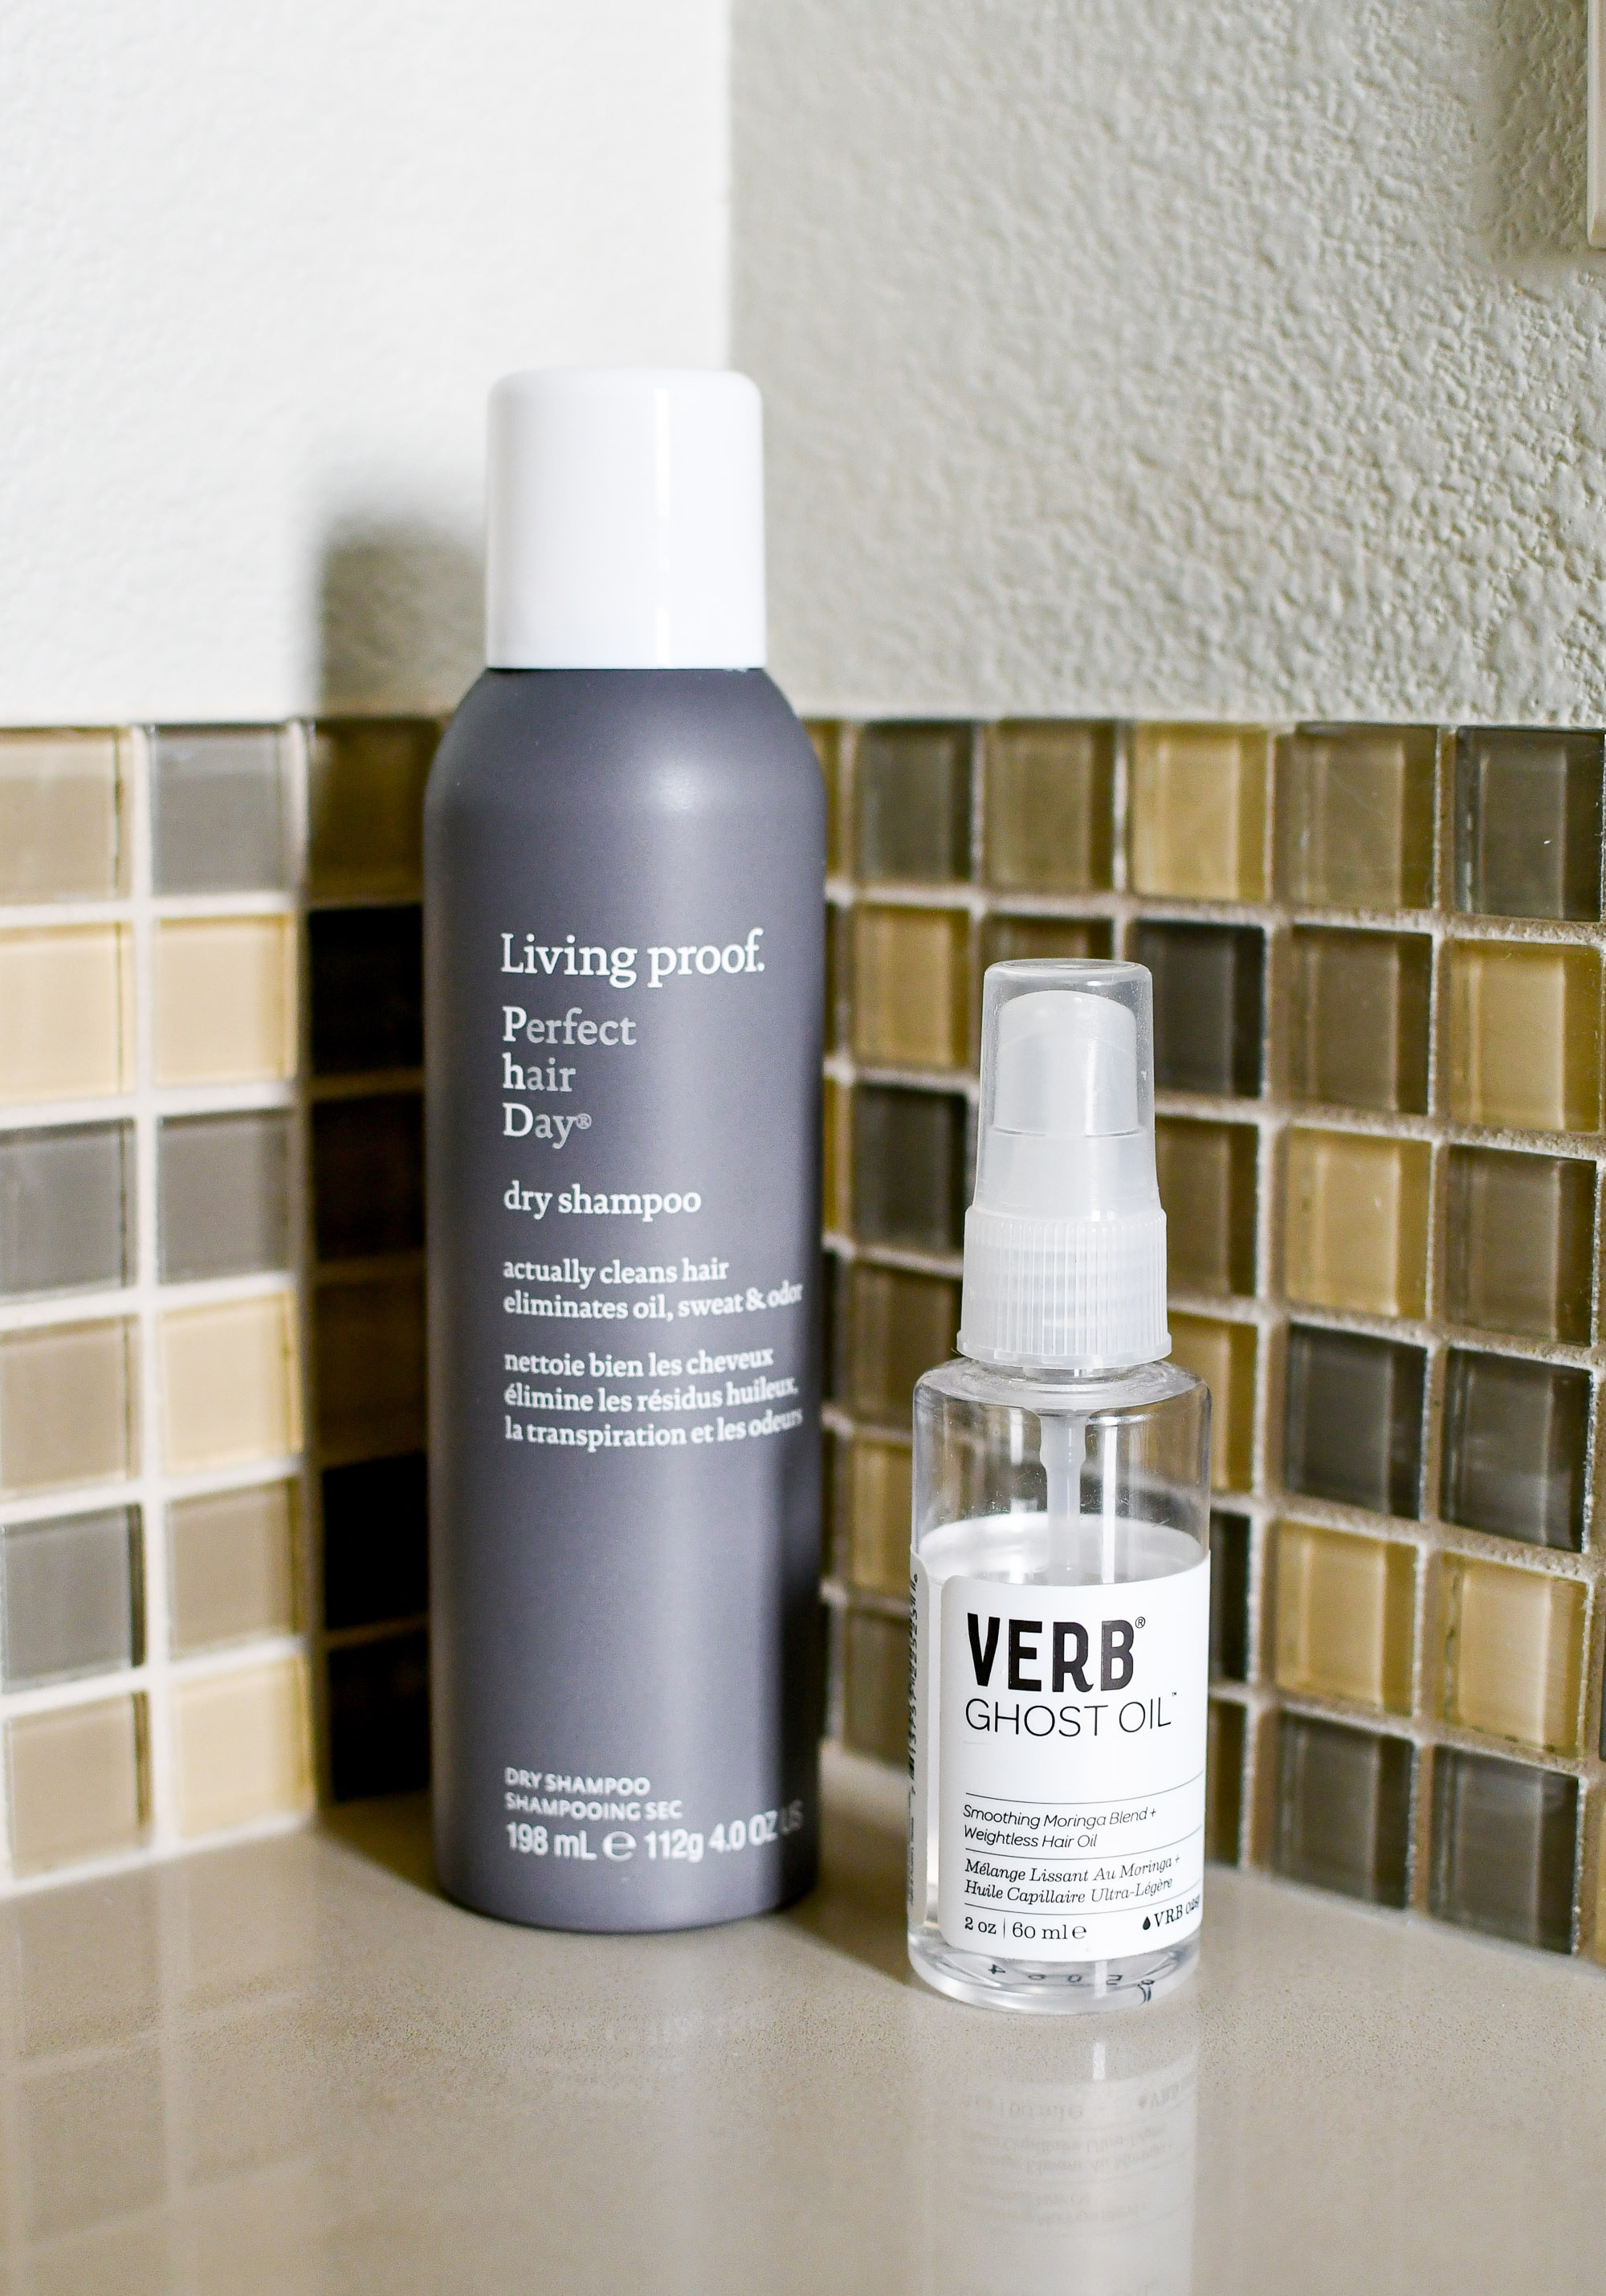 Living Proof dry shampoo and Verb ghost oil — Cotton Cashmere Cat Hair